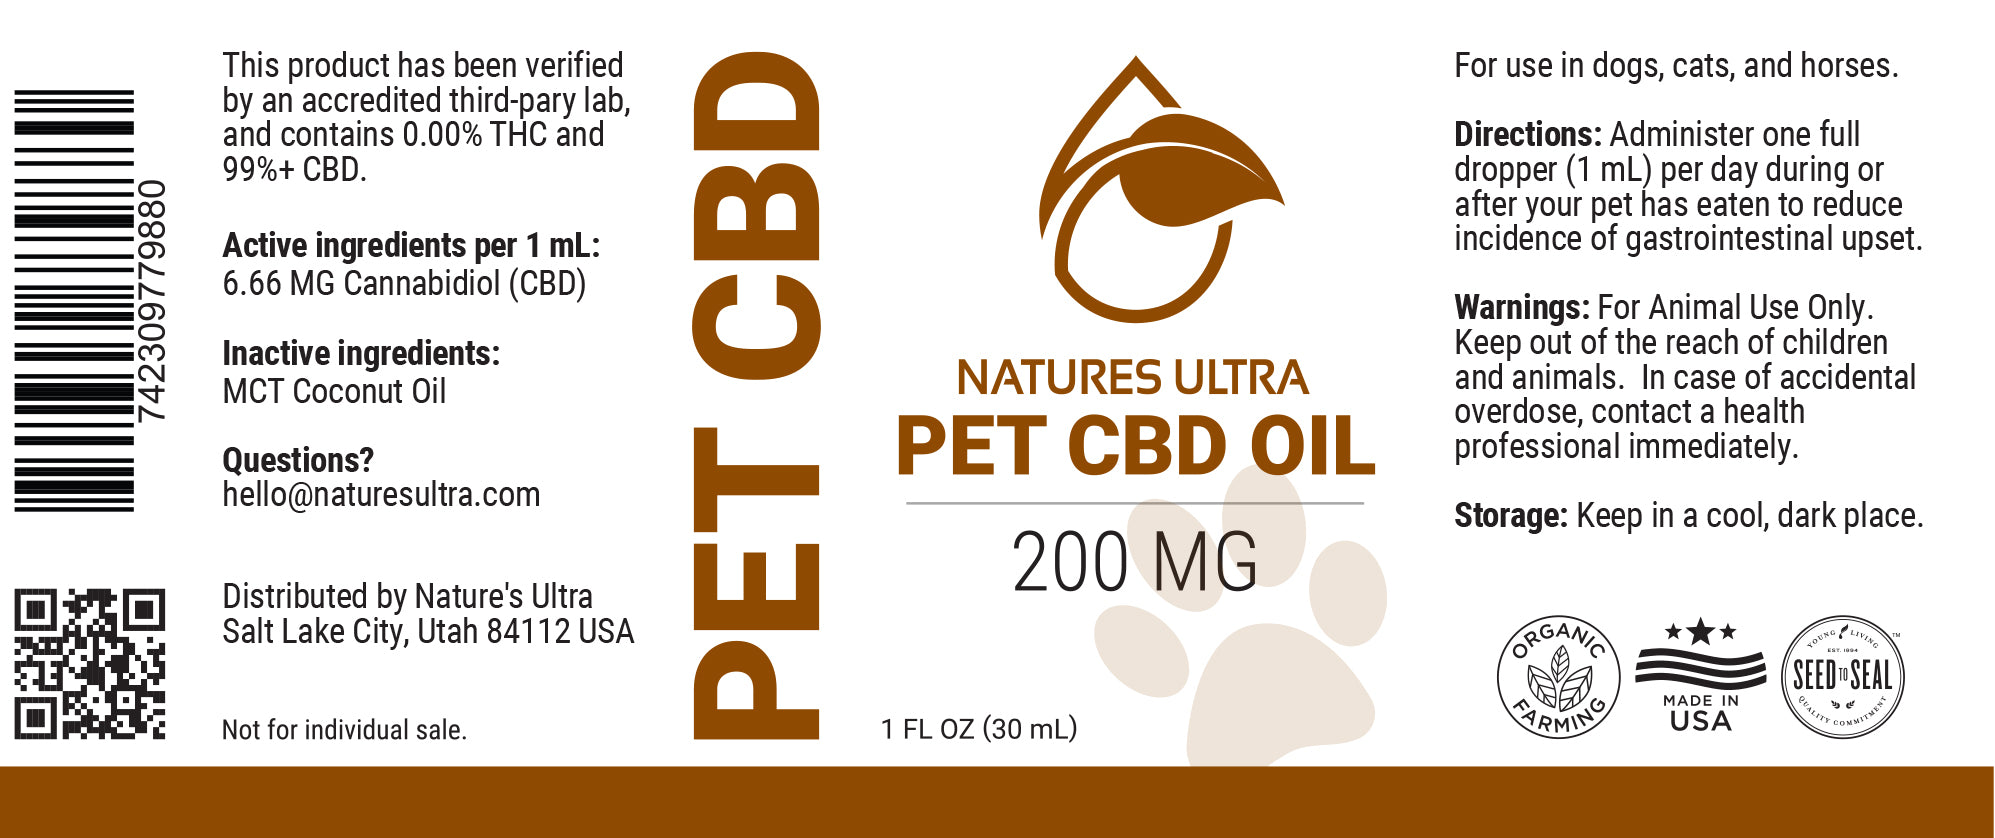 Pet CBD Oil Label from Nature's Ultra